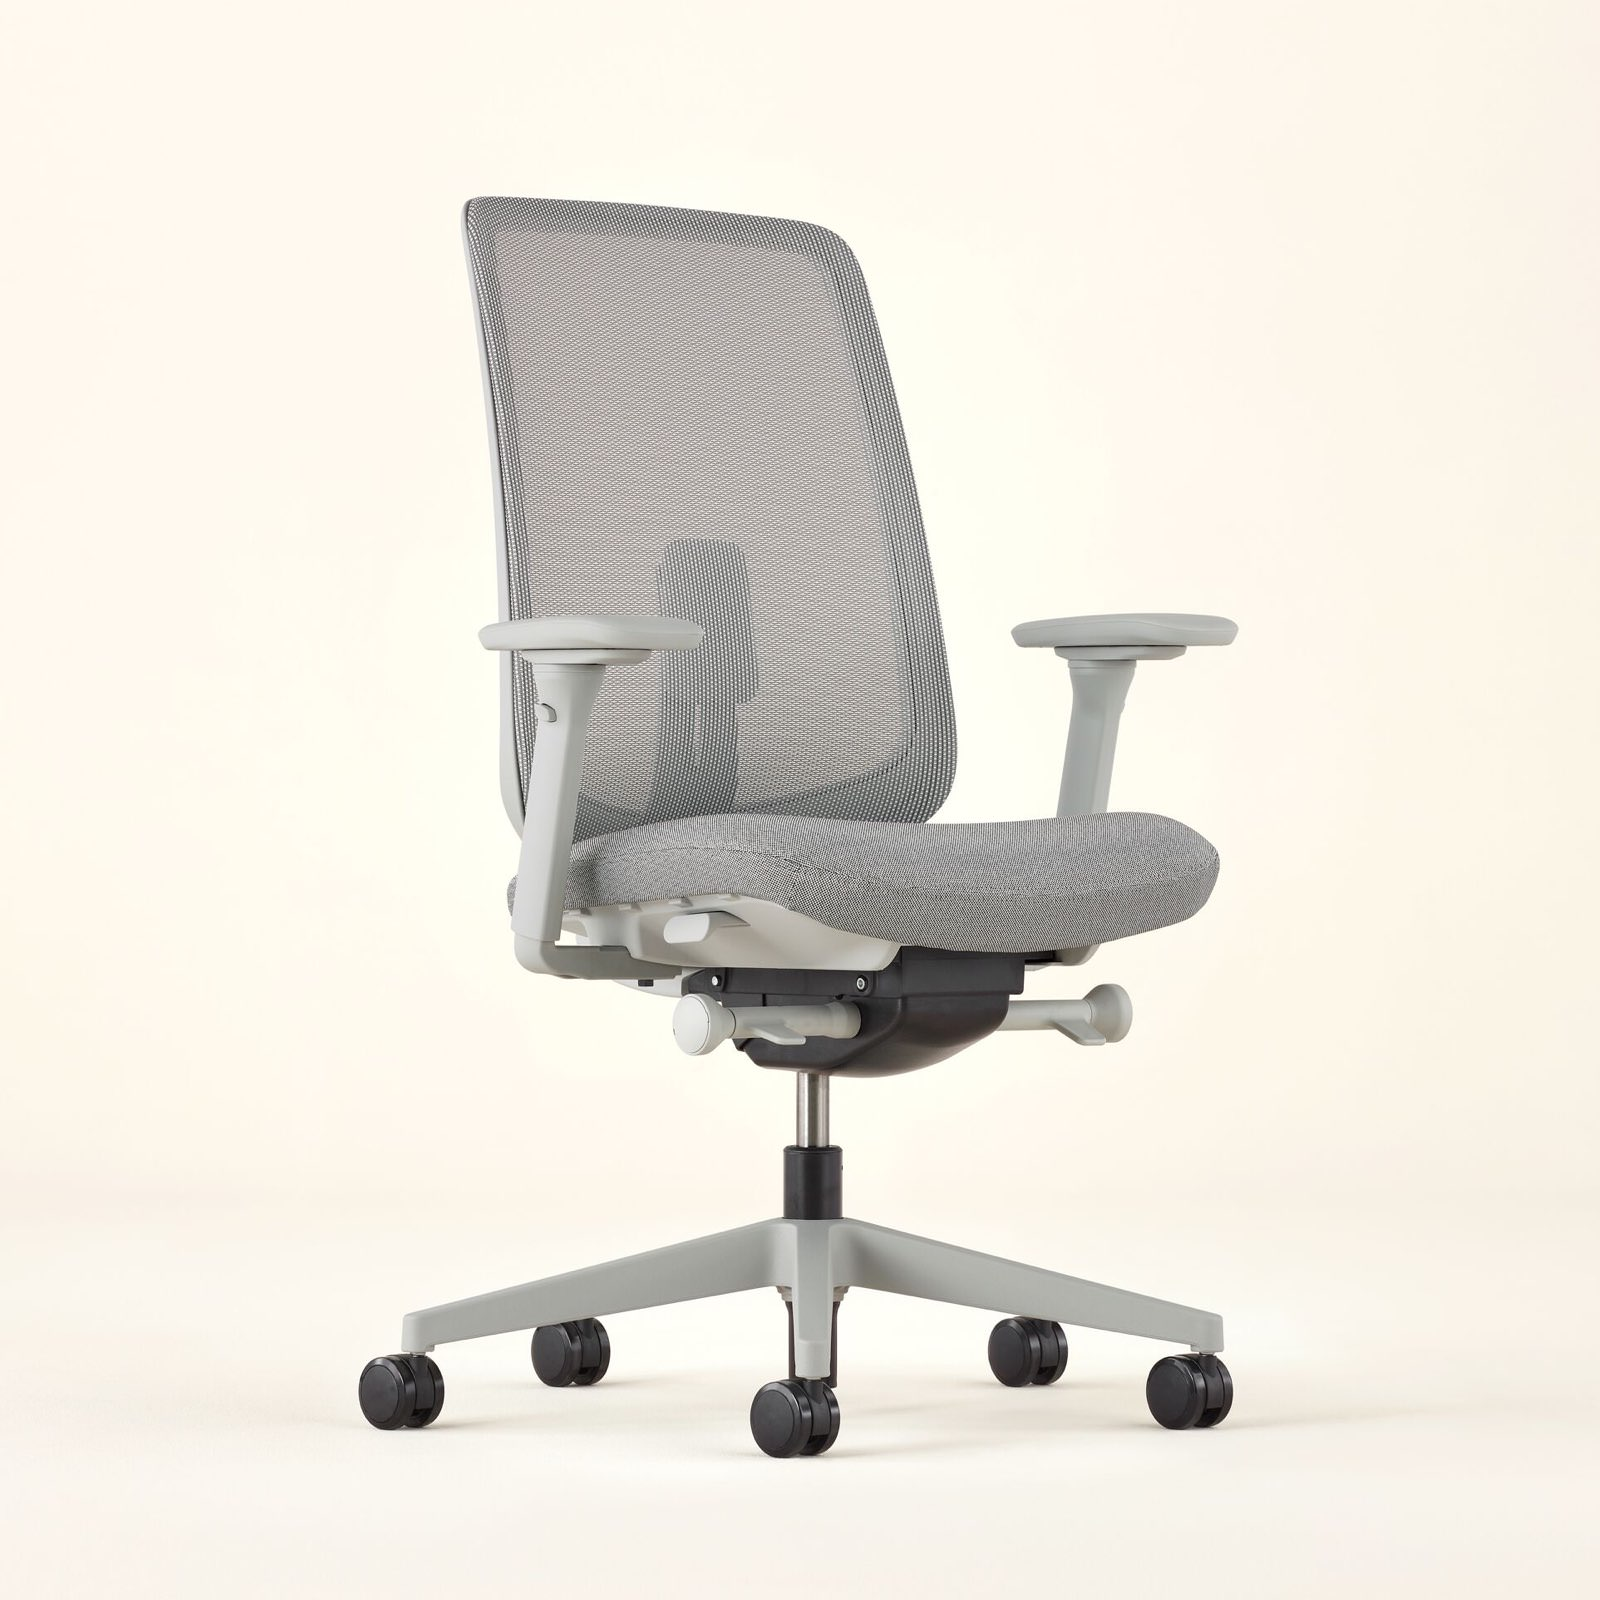 A full view of the Verus Chair swiveled 45 degrees to the right.